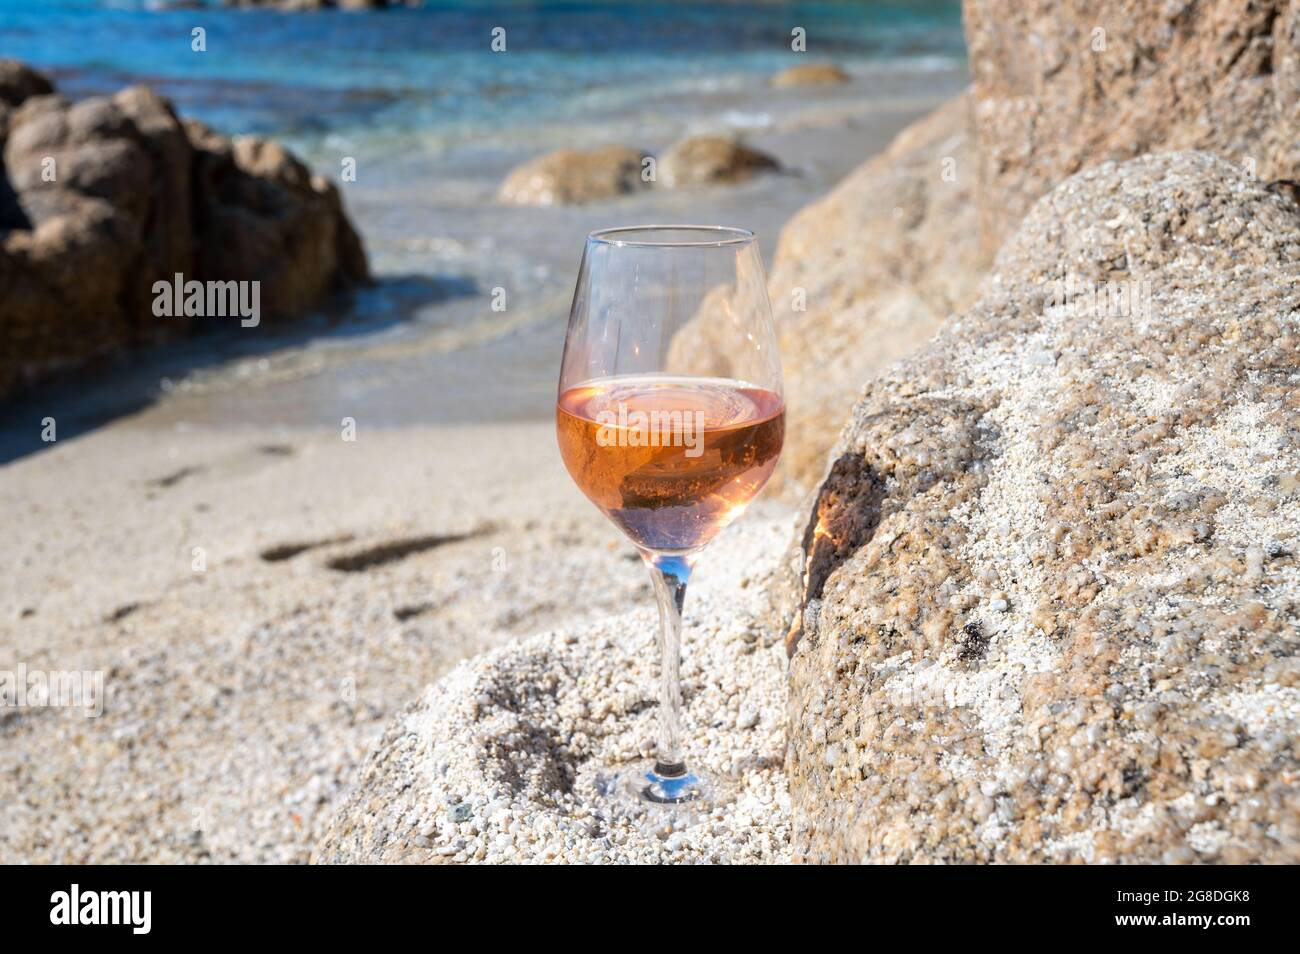 Summer time in Provence, glass of cold rose wine on sandy beach near Saint-Tropez in sunny day, Var department, France Stock Photo